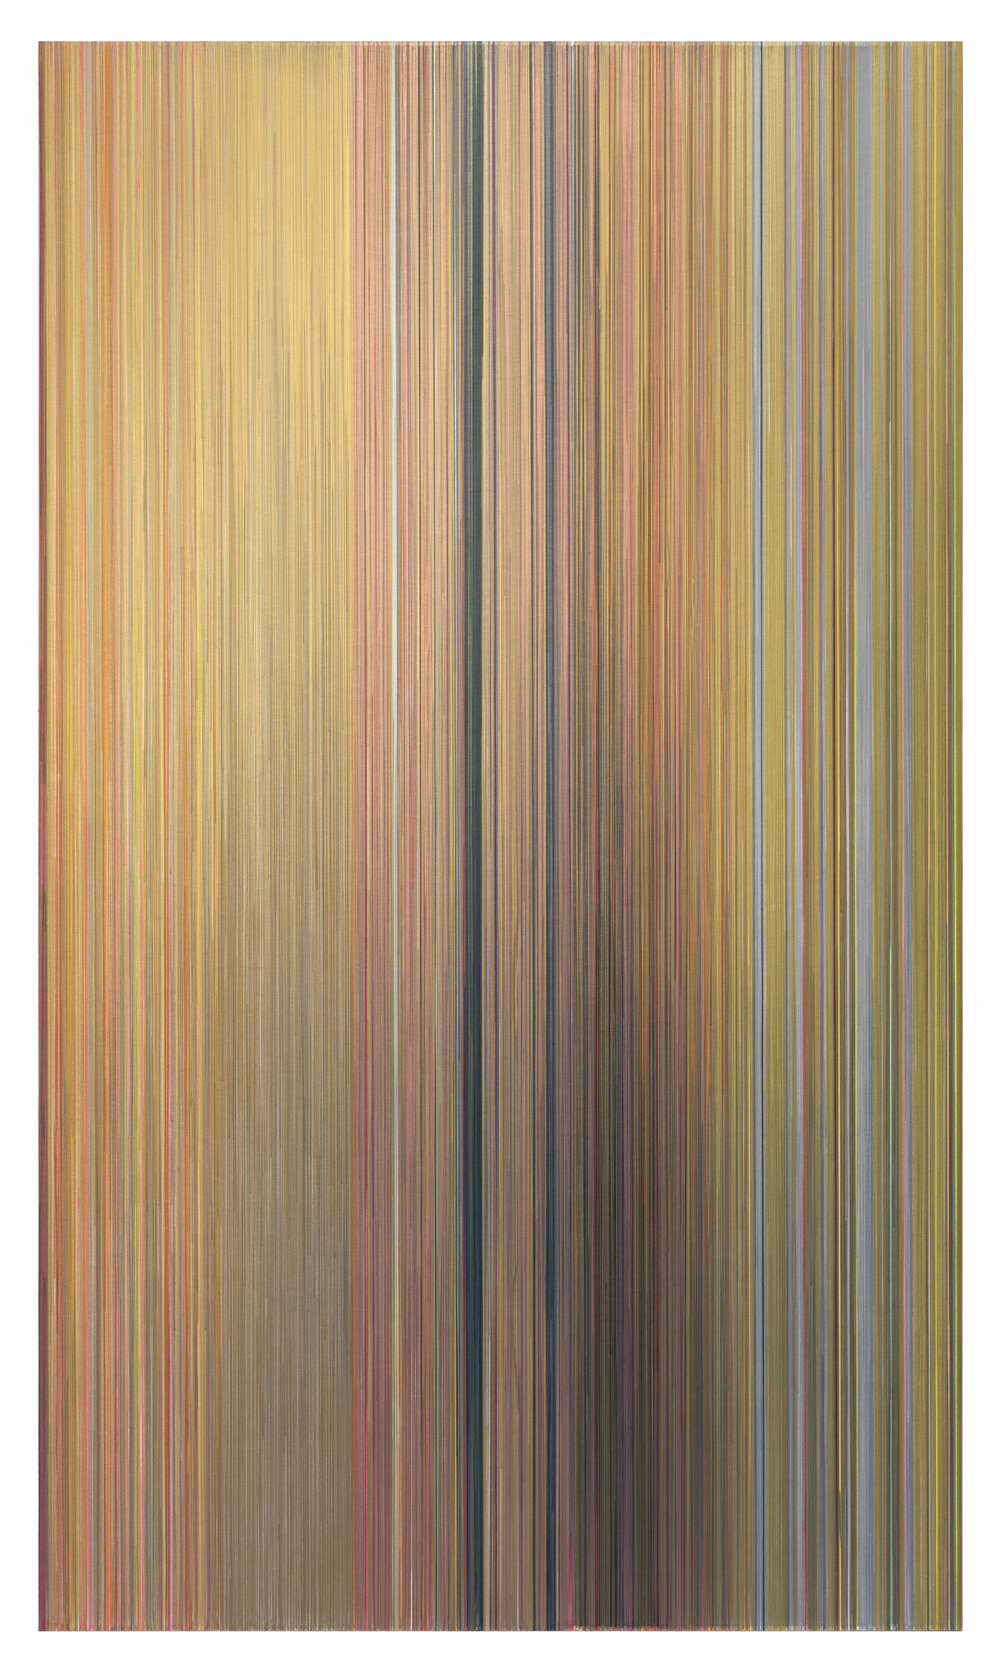 as though air could turn to honey  2017 graphite and colored pencil on mat board 59 by 102 inches title from page 290 of Wanderlust: A History of Walking by Rebecca Solnit (2001) Penguin Books